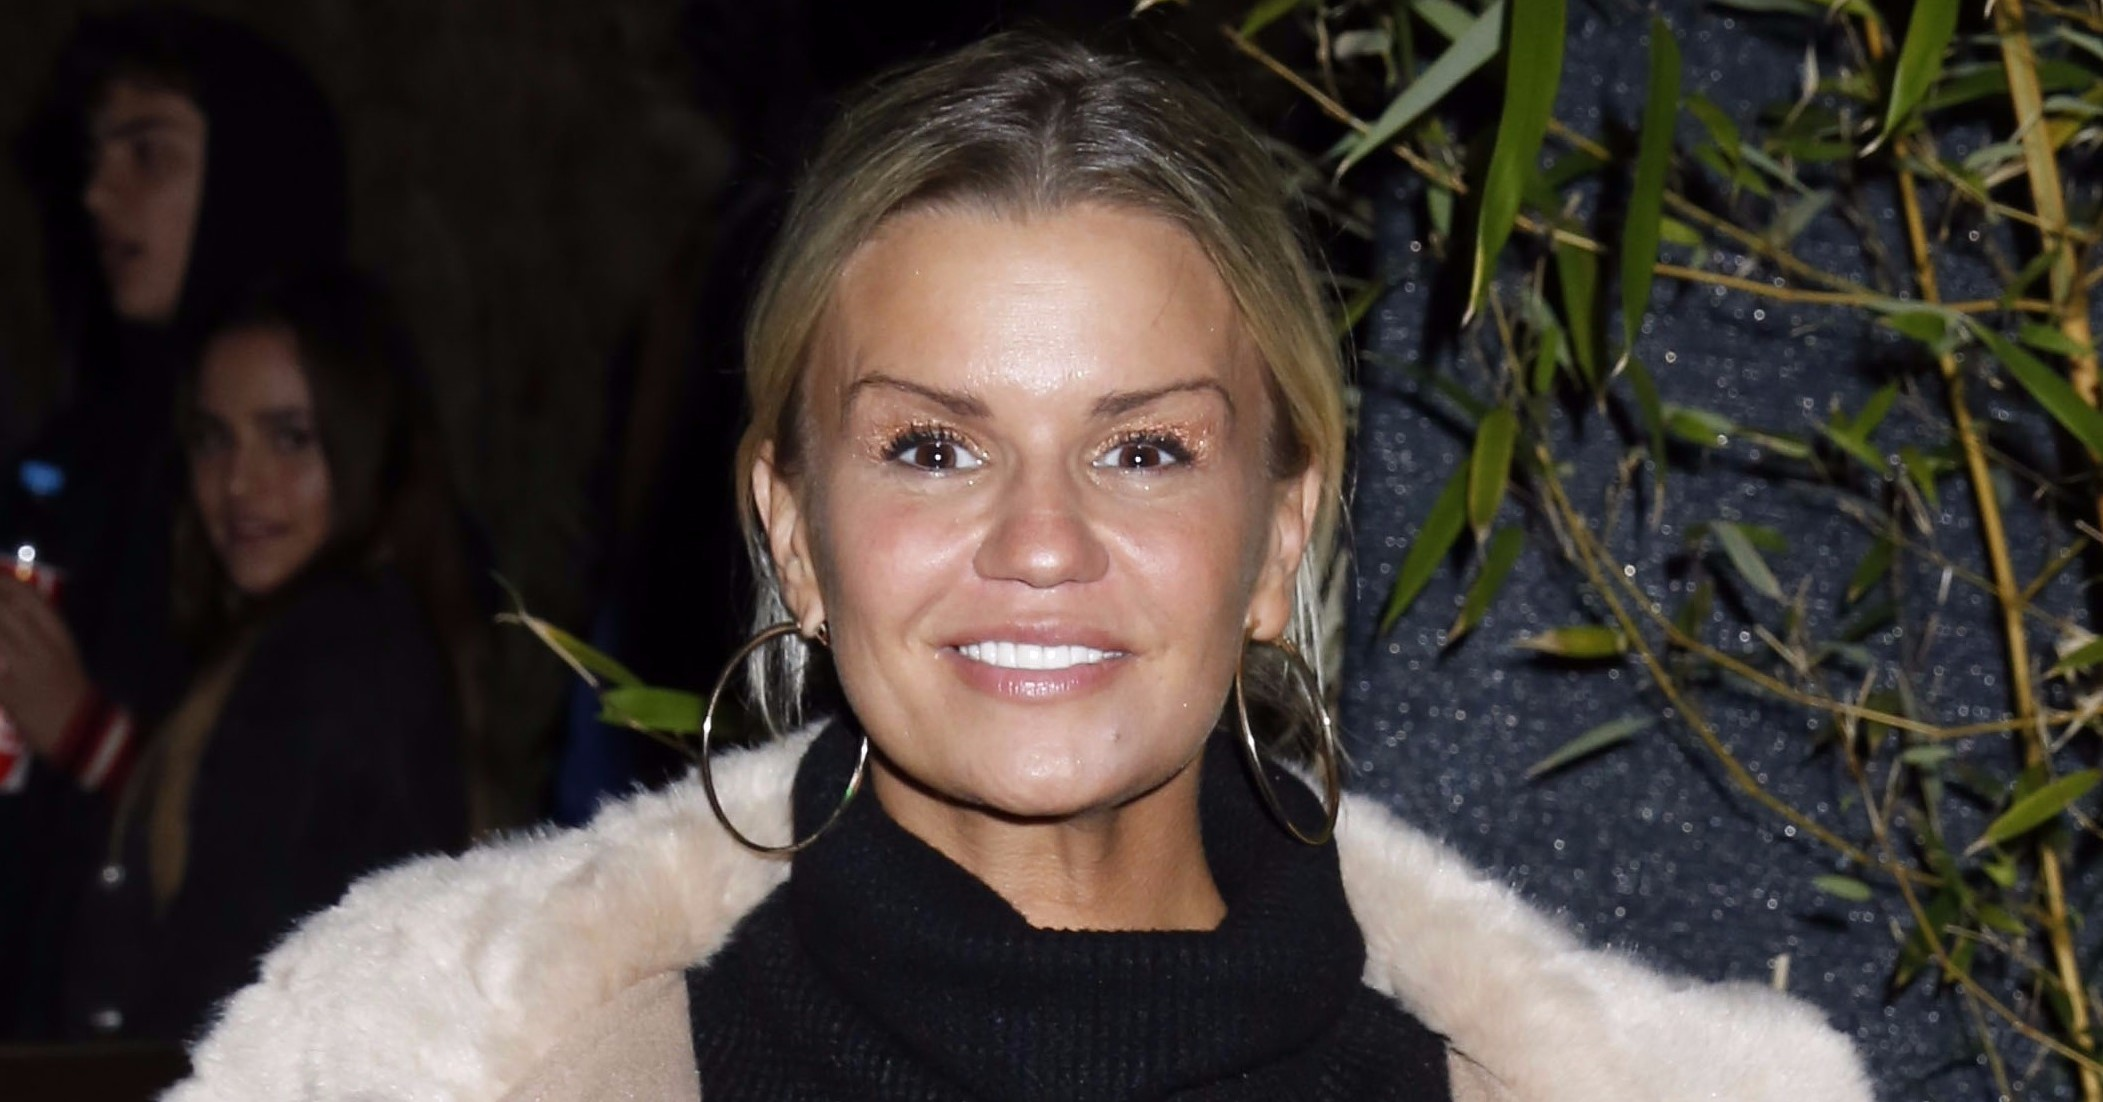 Kerry Katona shows off toned abs in underwear photo